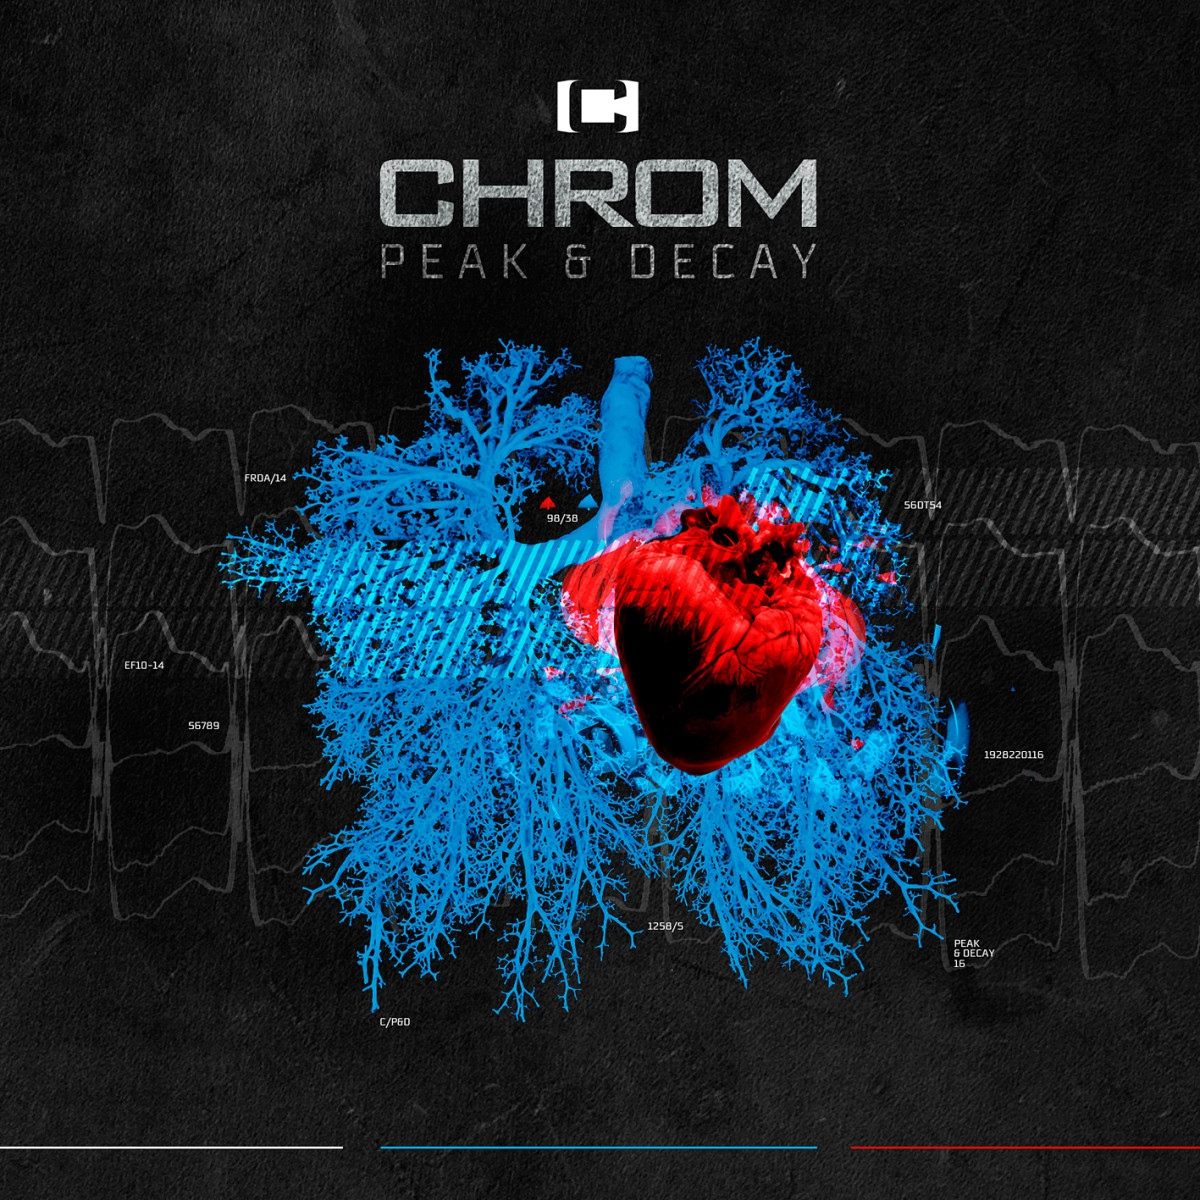 CHROM Peak And Decay (Deluxe Edition) 2CD Digipack 2016